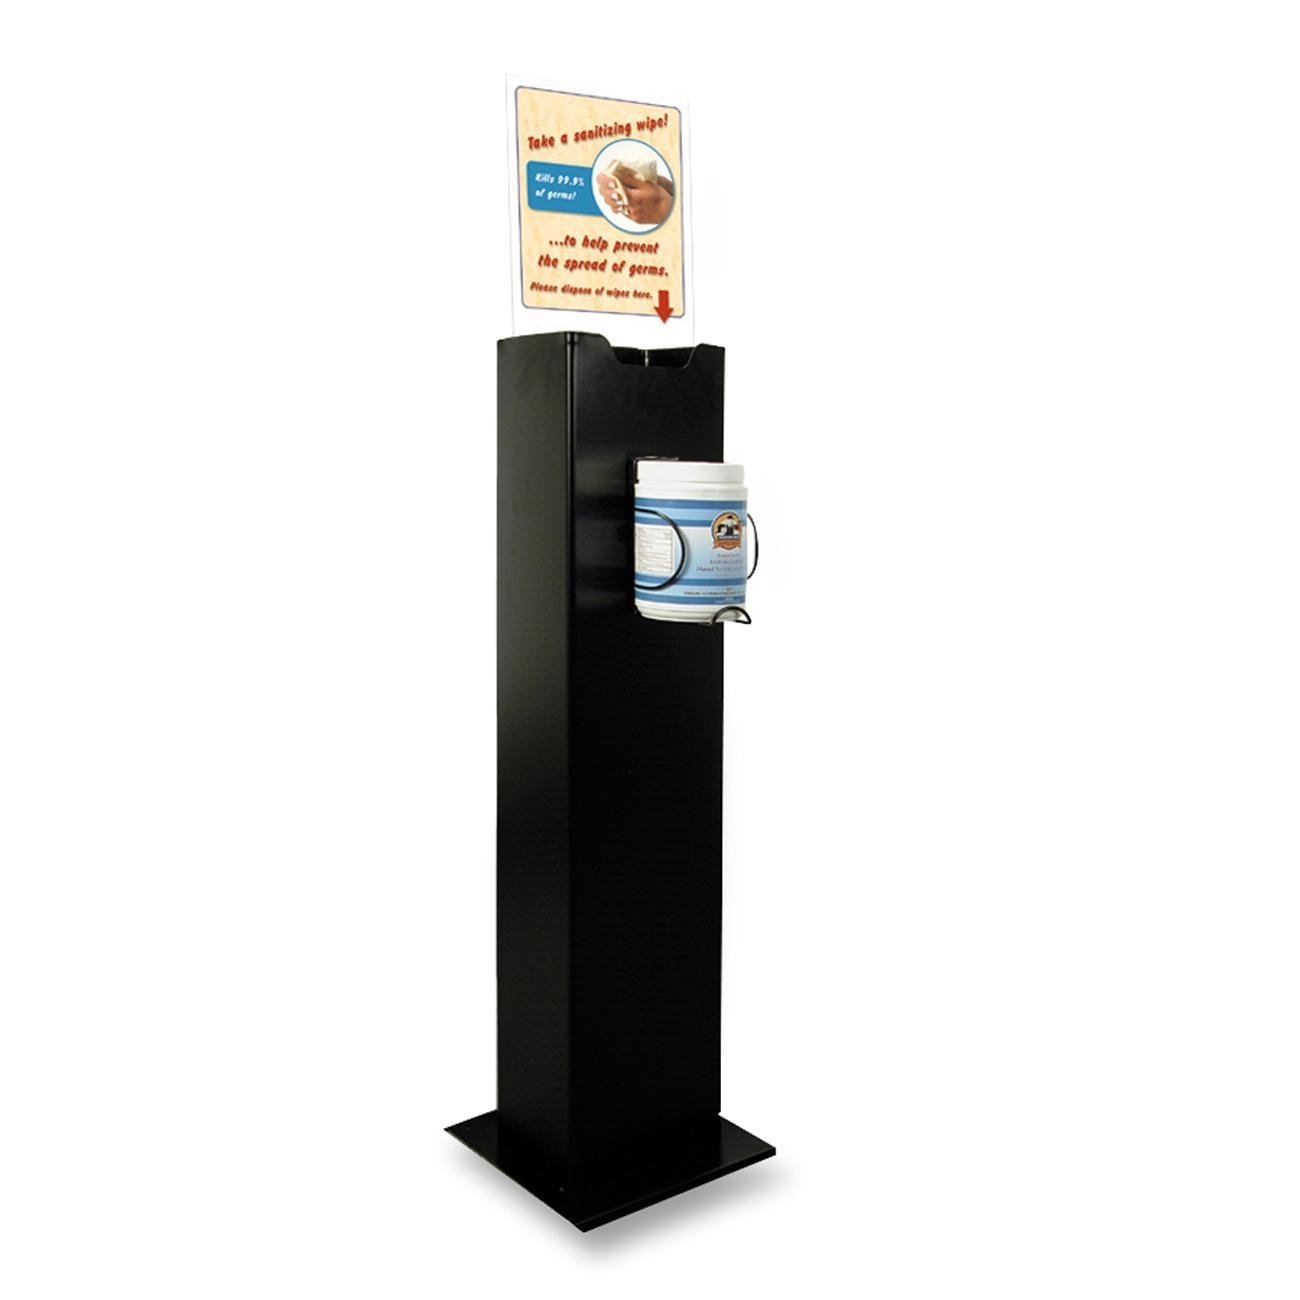 Buddy Products Hand Wipe Station